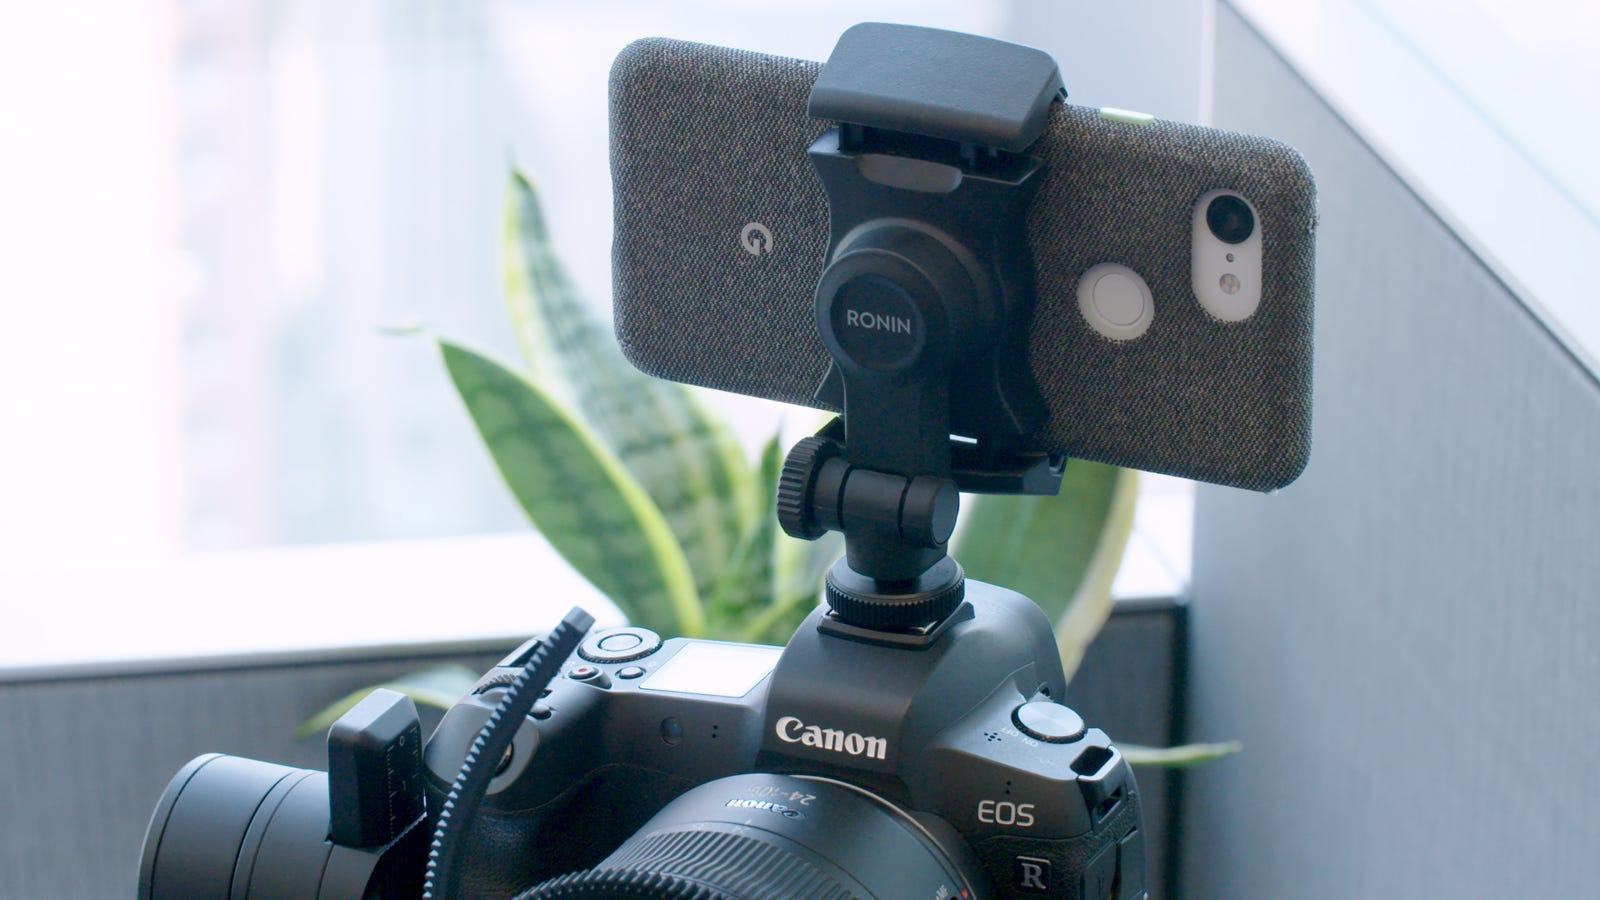 The Ronin-SC includes a phone mount, and the gimbal gains more features through an app.